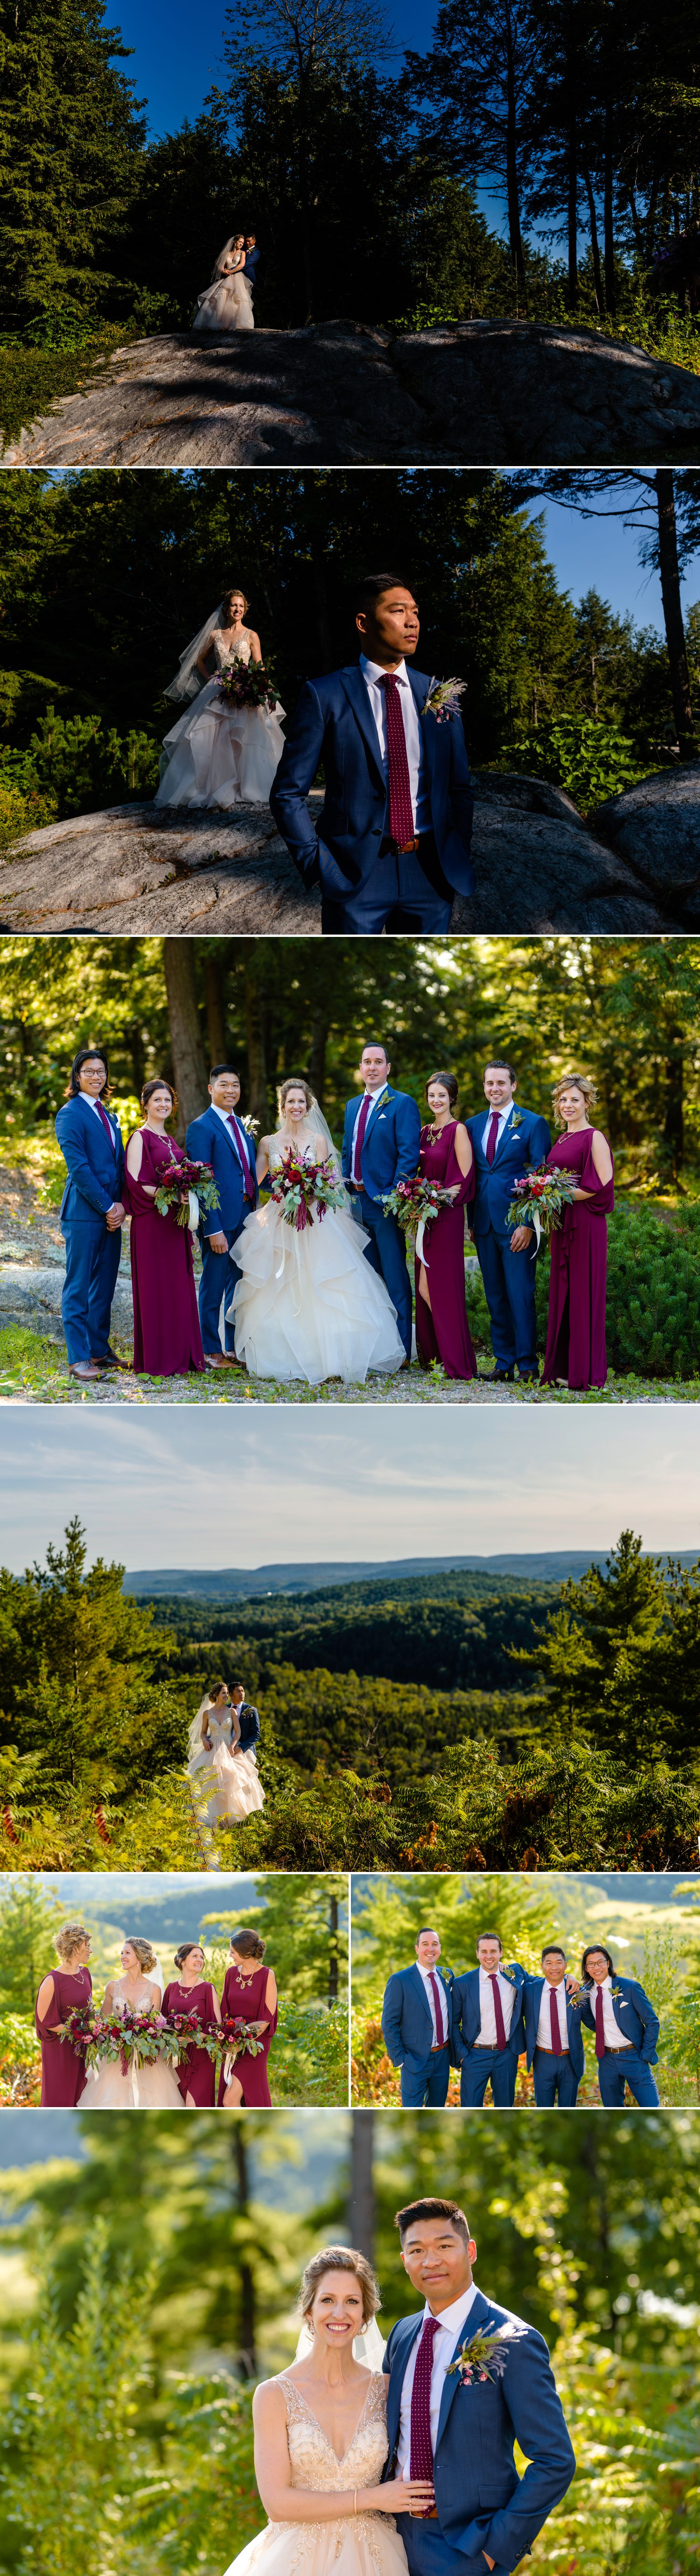 wedding party portraits at a le belvedere wedding in wakefield quebec